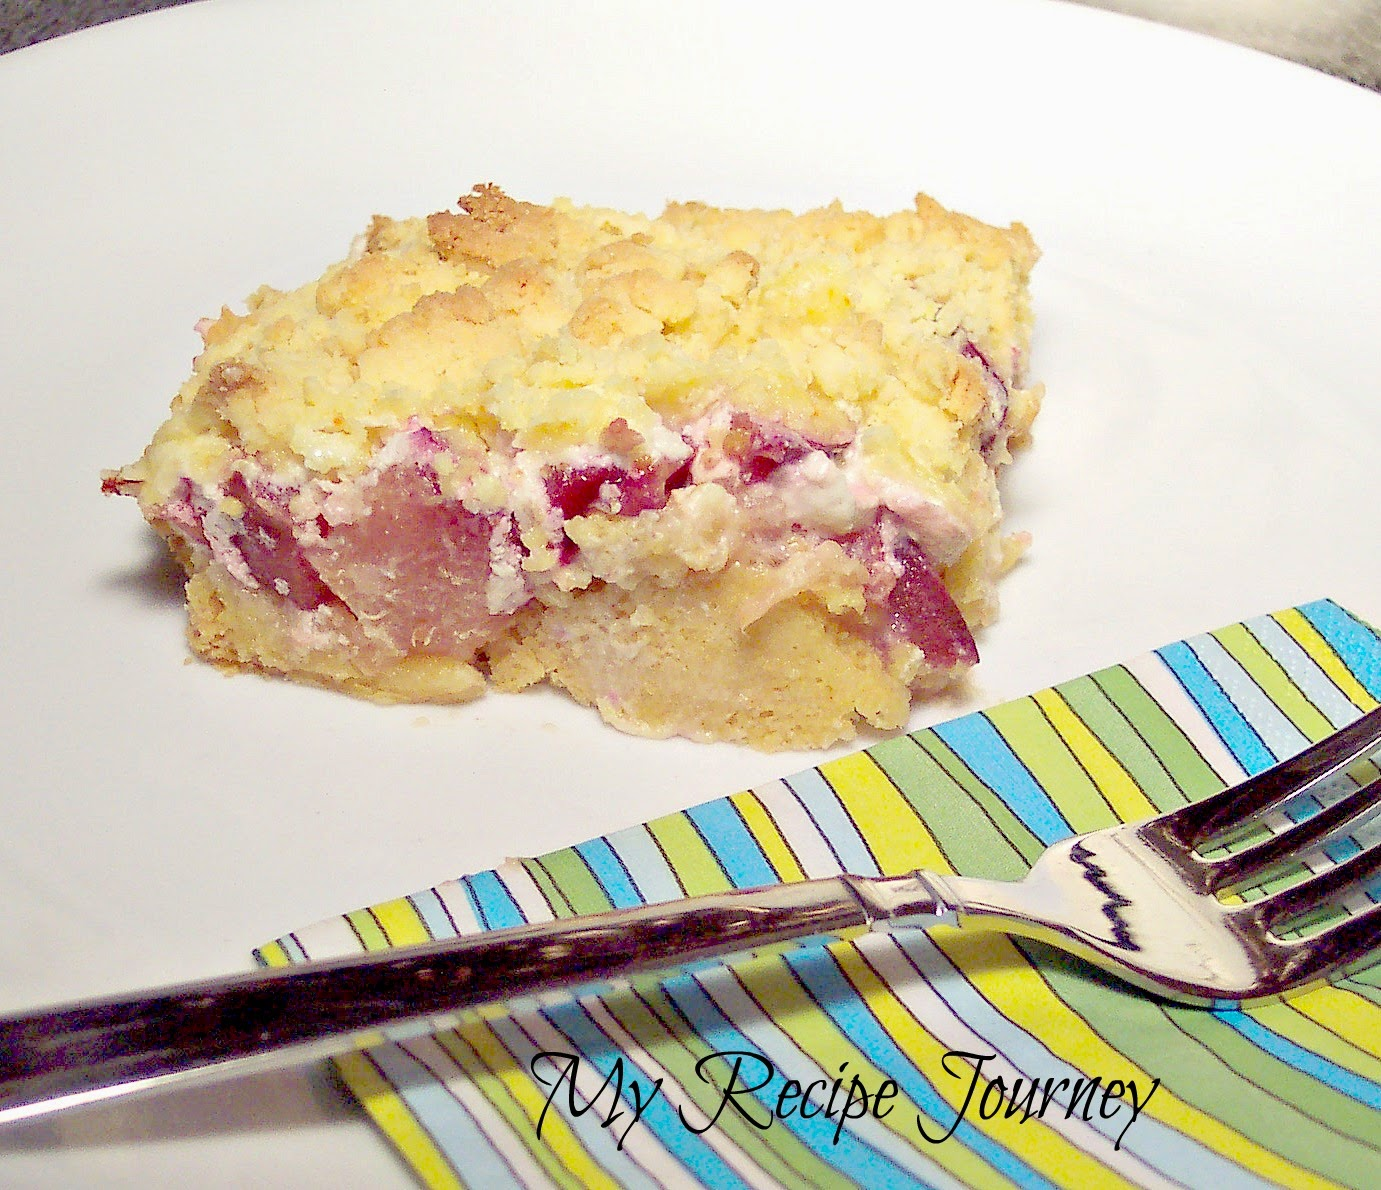 Cream Cheese Plum Crumble - From Boxed Cake Mix